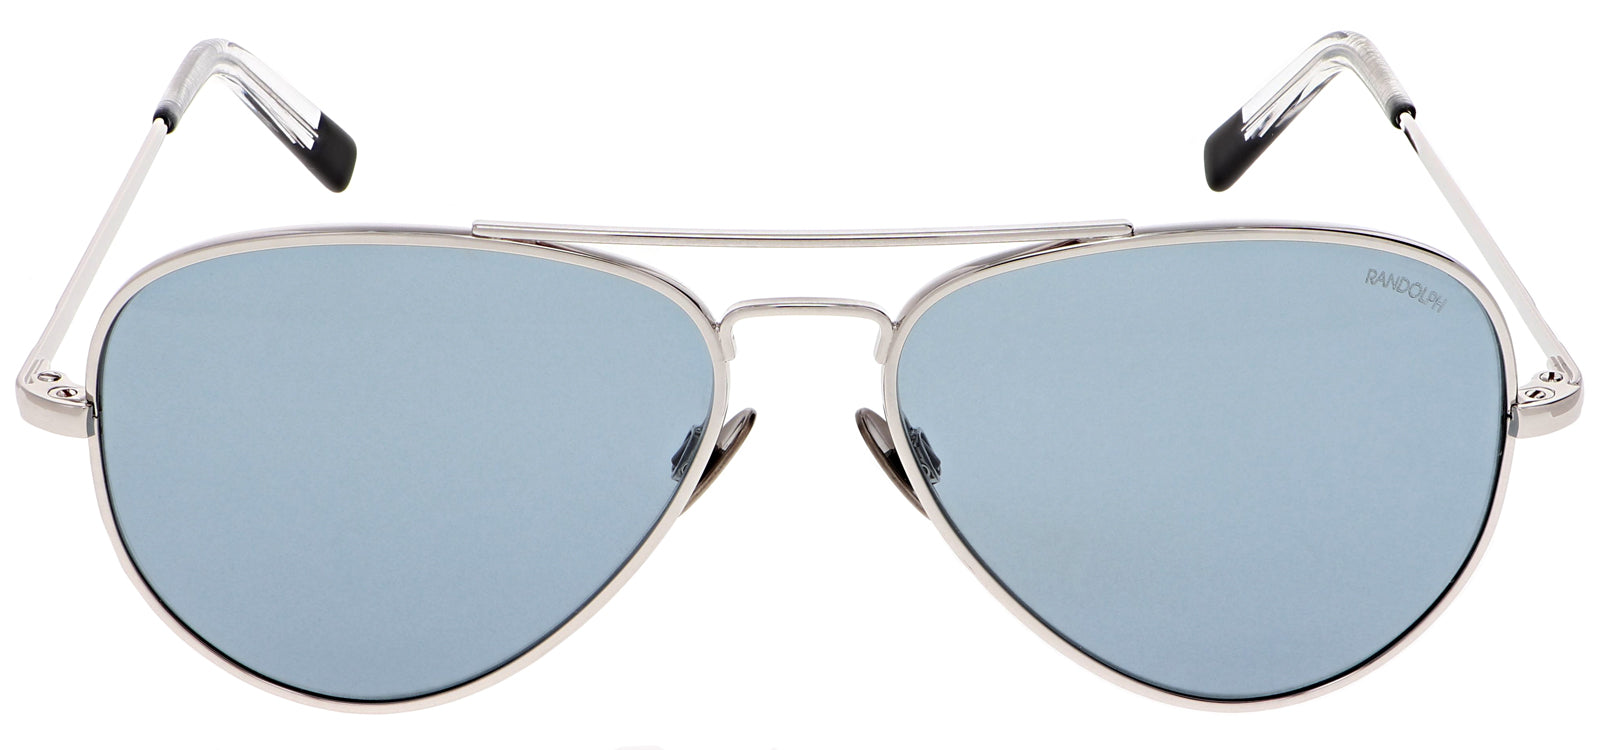 The Concorde in White Gold and Blue Hyrdo Lens.   Randolph Engineering